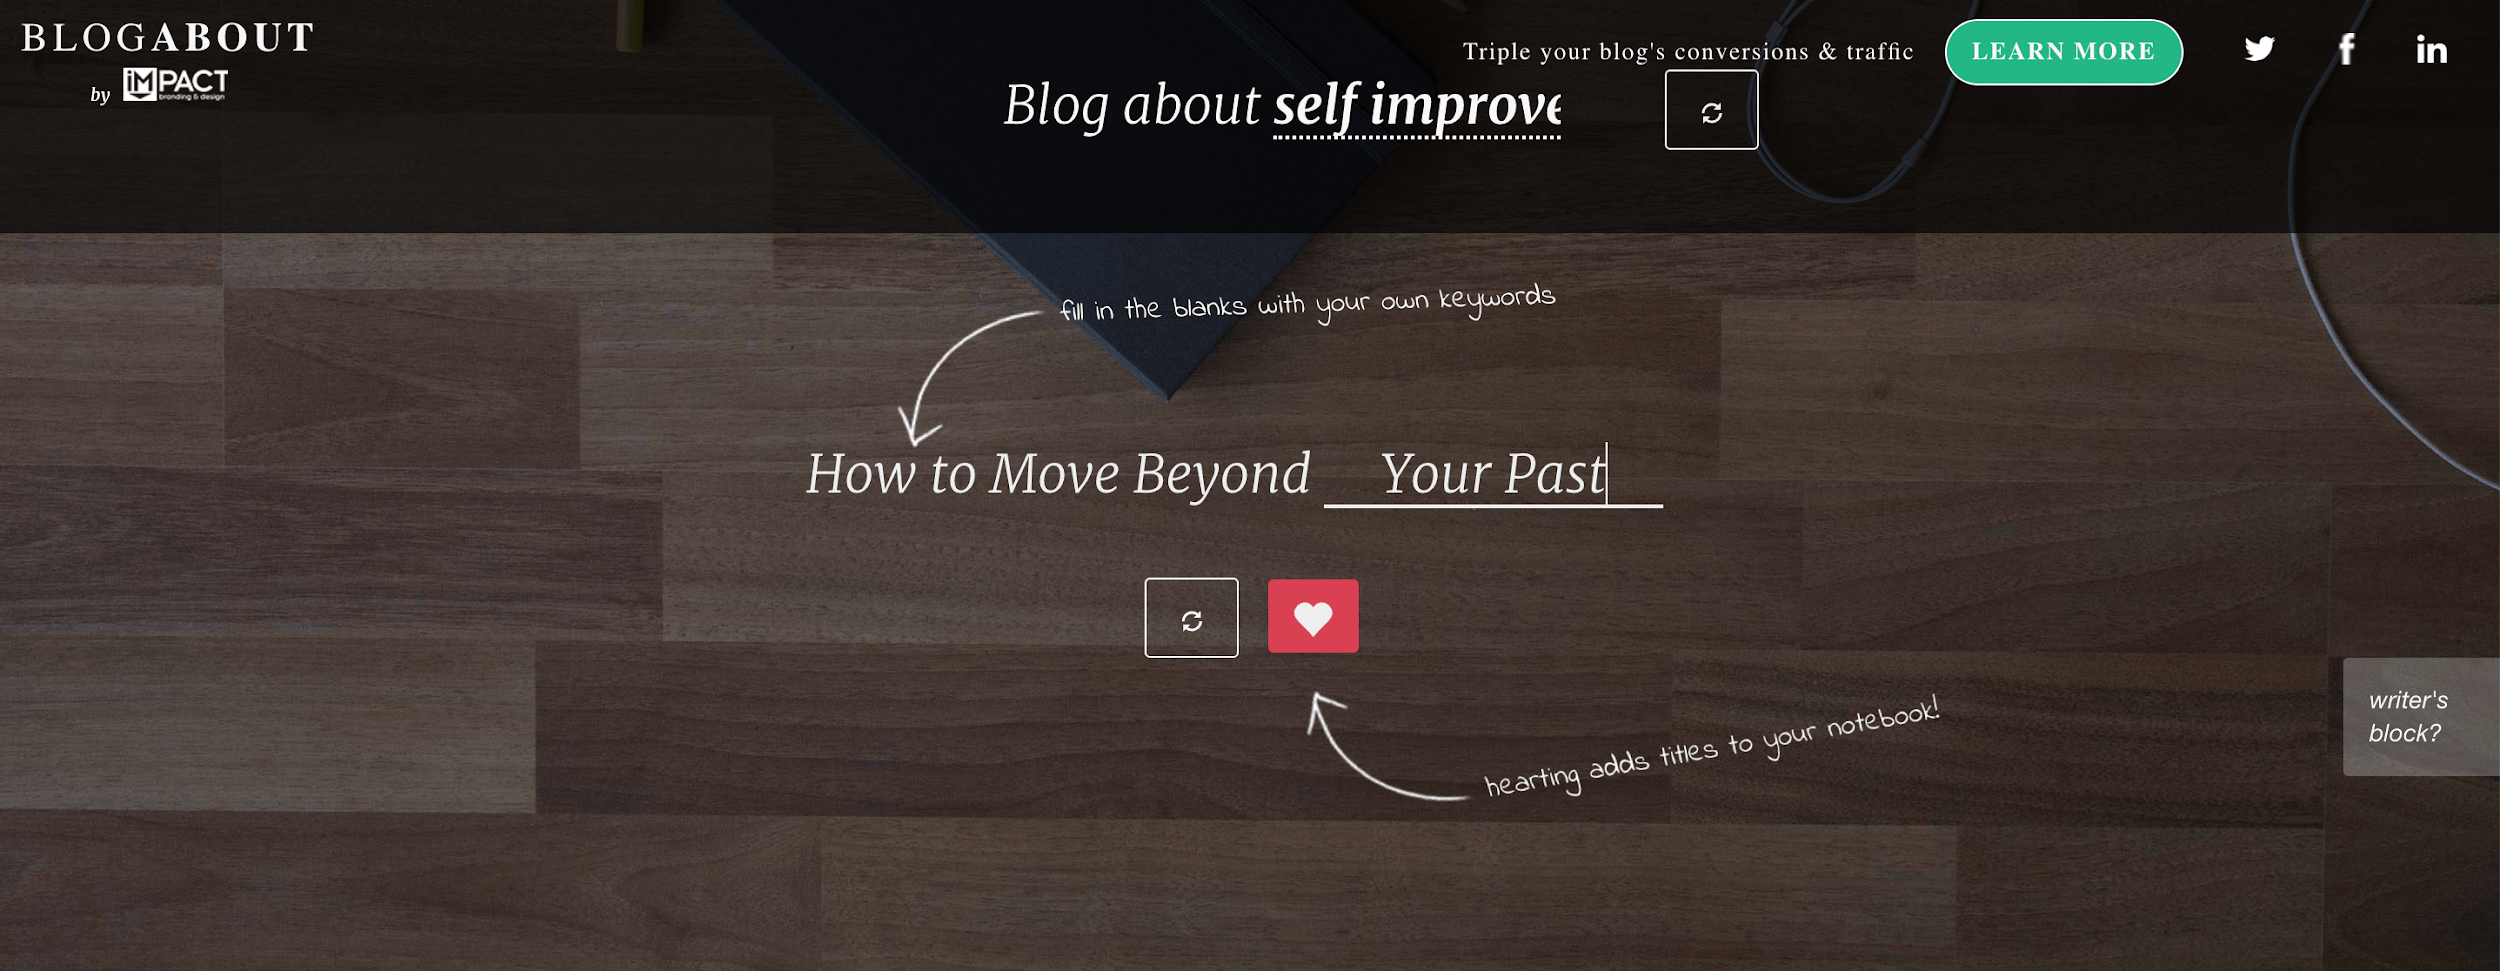 5-Free-Tools-to-Improve-Your-Blog-image14